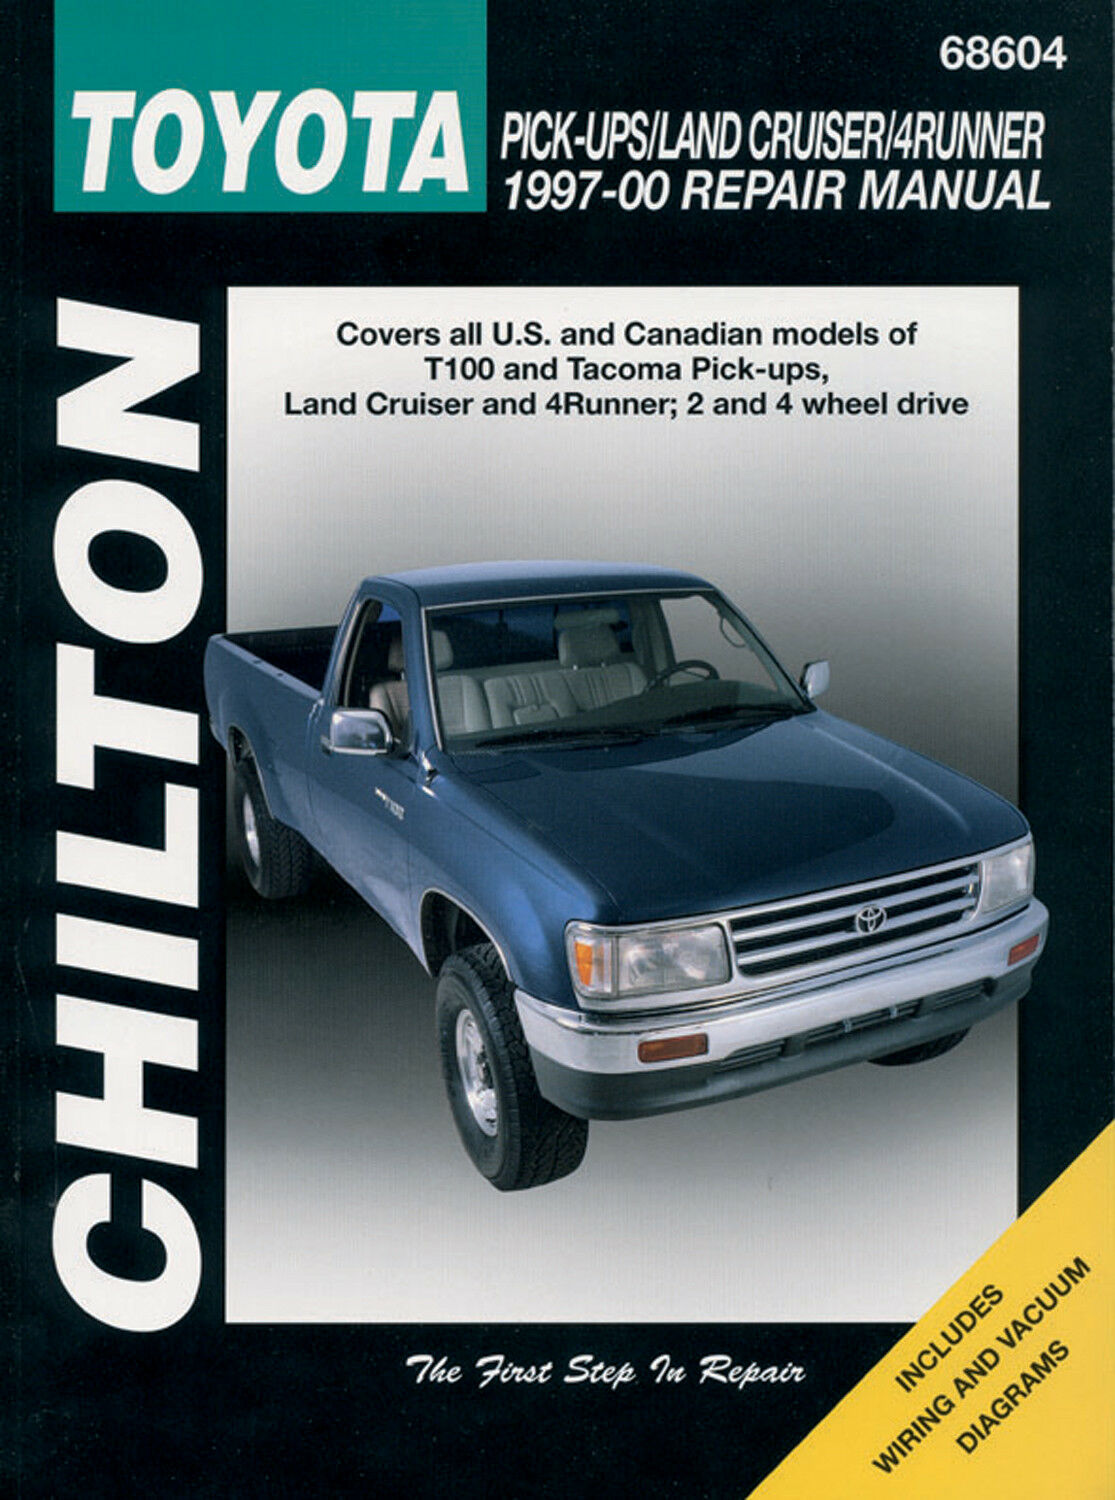 1997 Toyota T100 Engine Vacuum Diagram Repair Manual Chilton 68604 Ebay Stock Photo